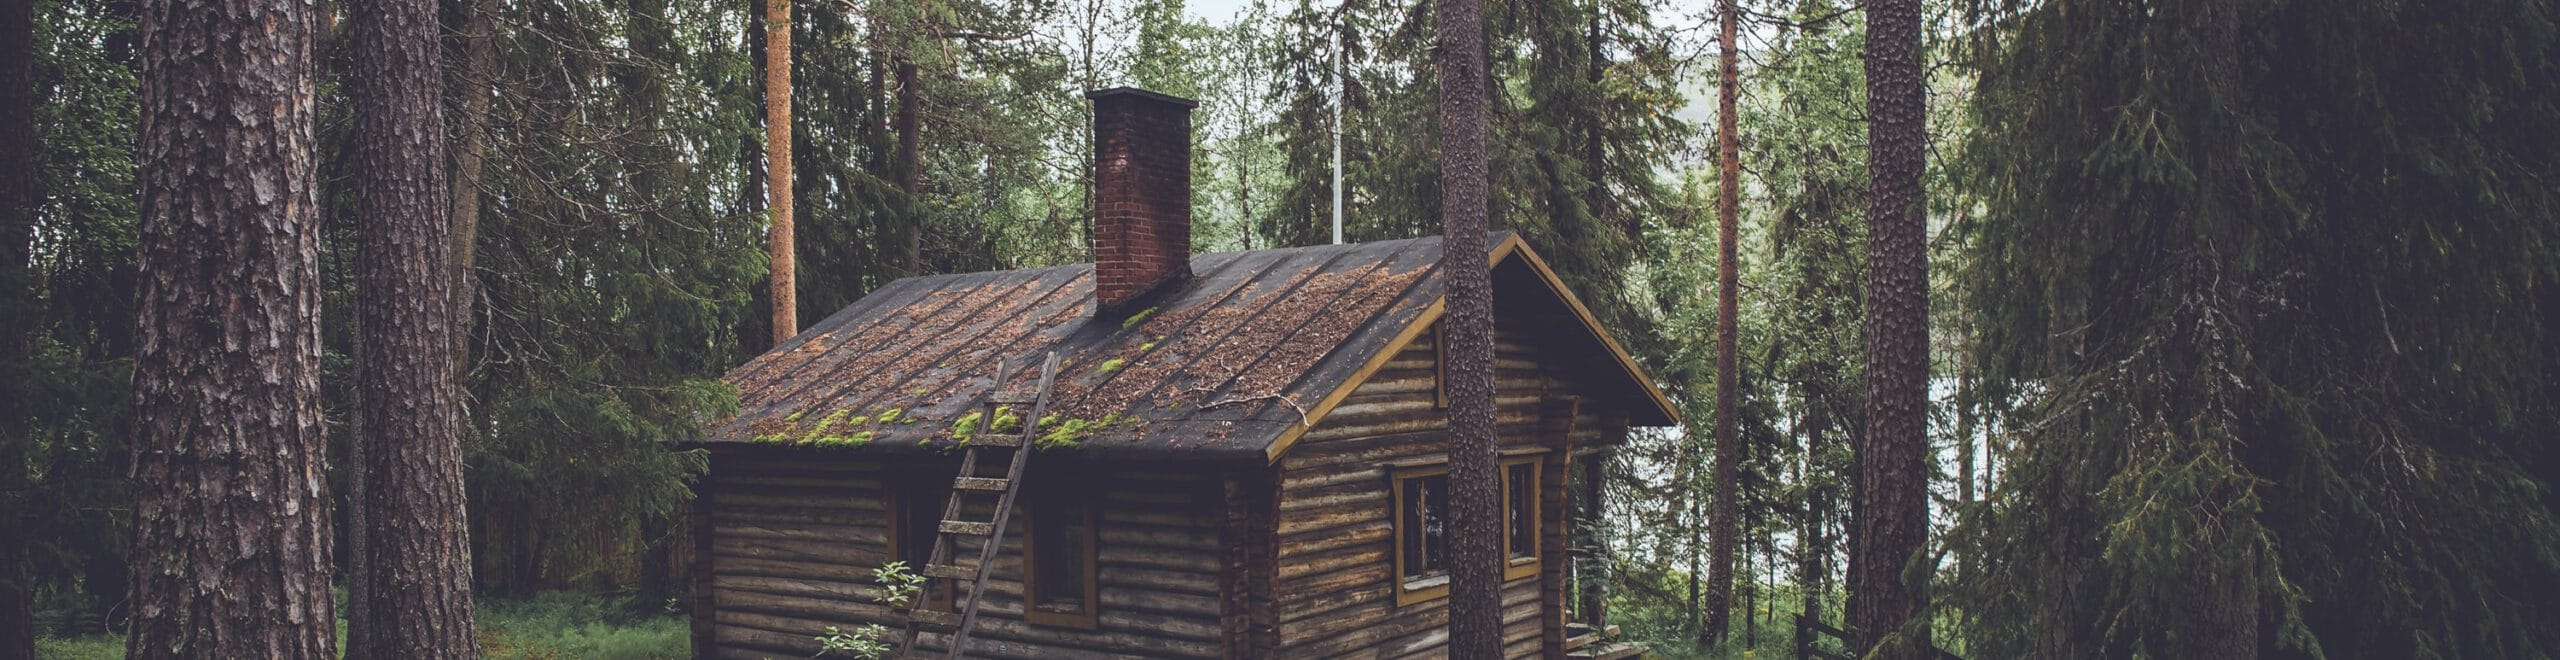 Russian poustinia, a sparsely furnished cabin